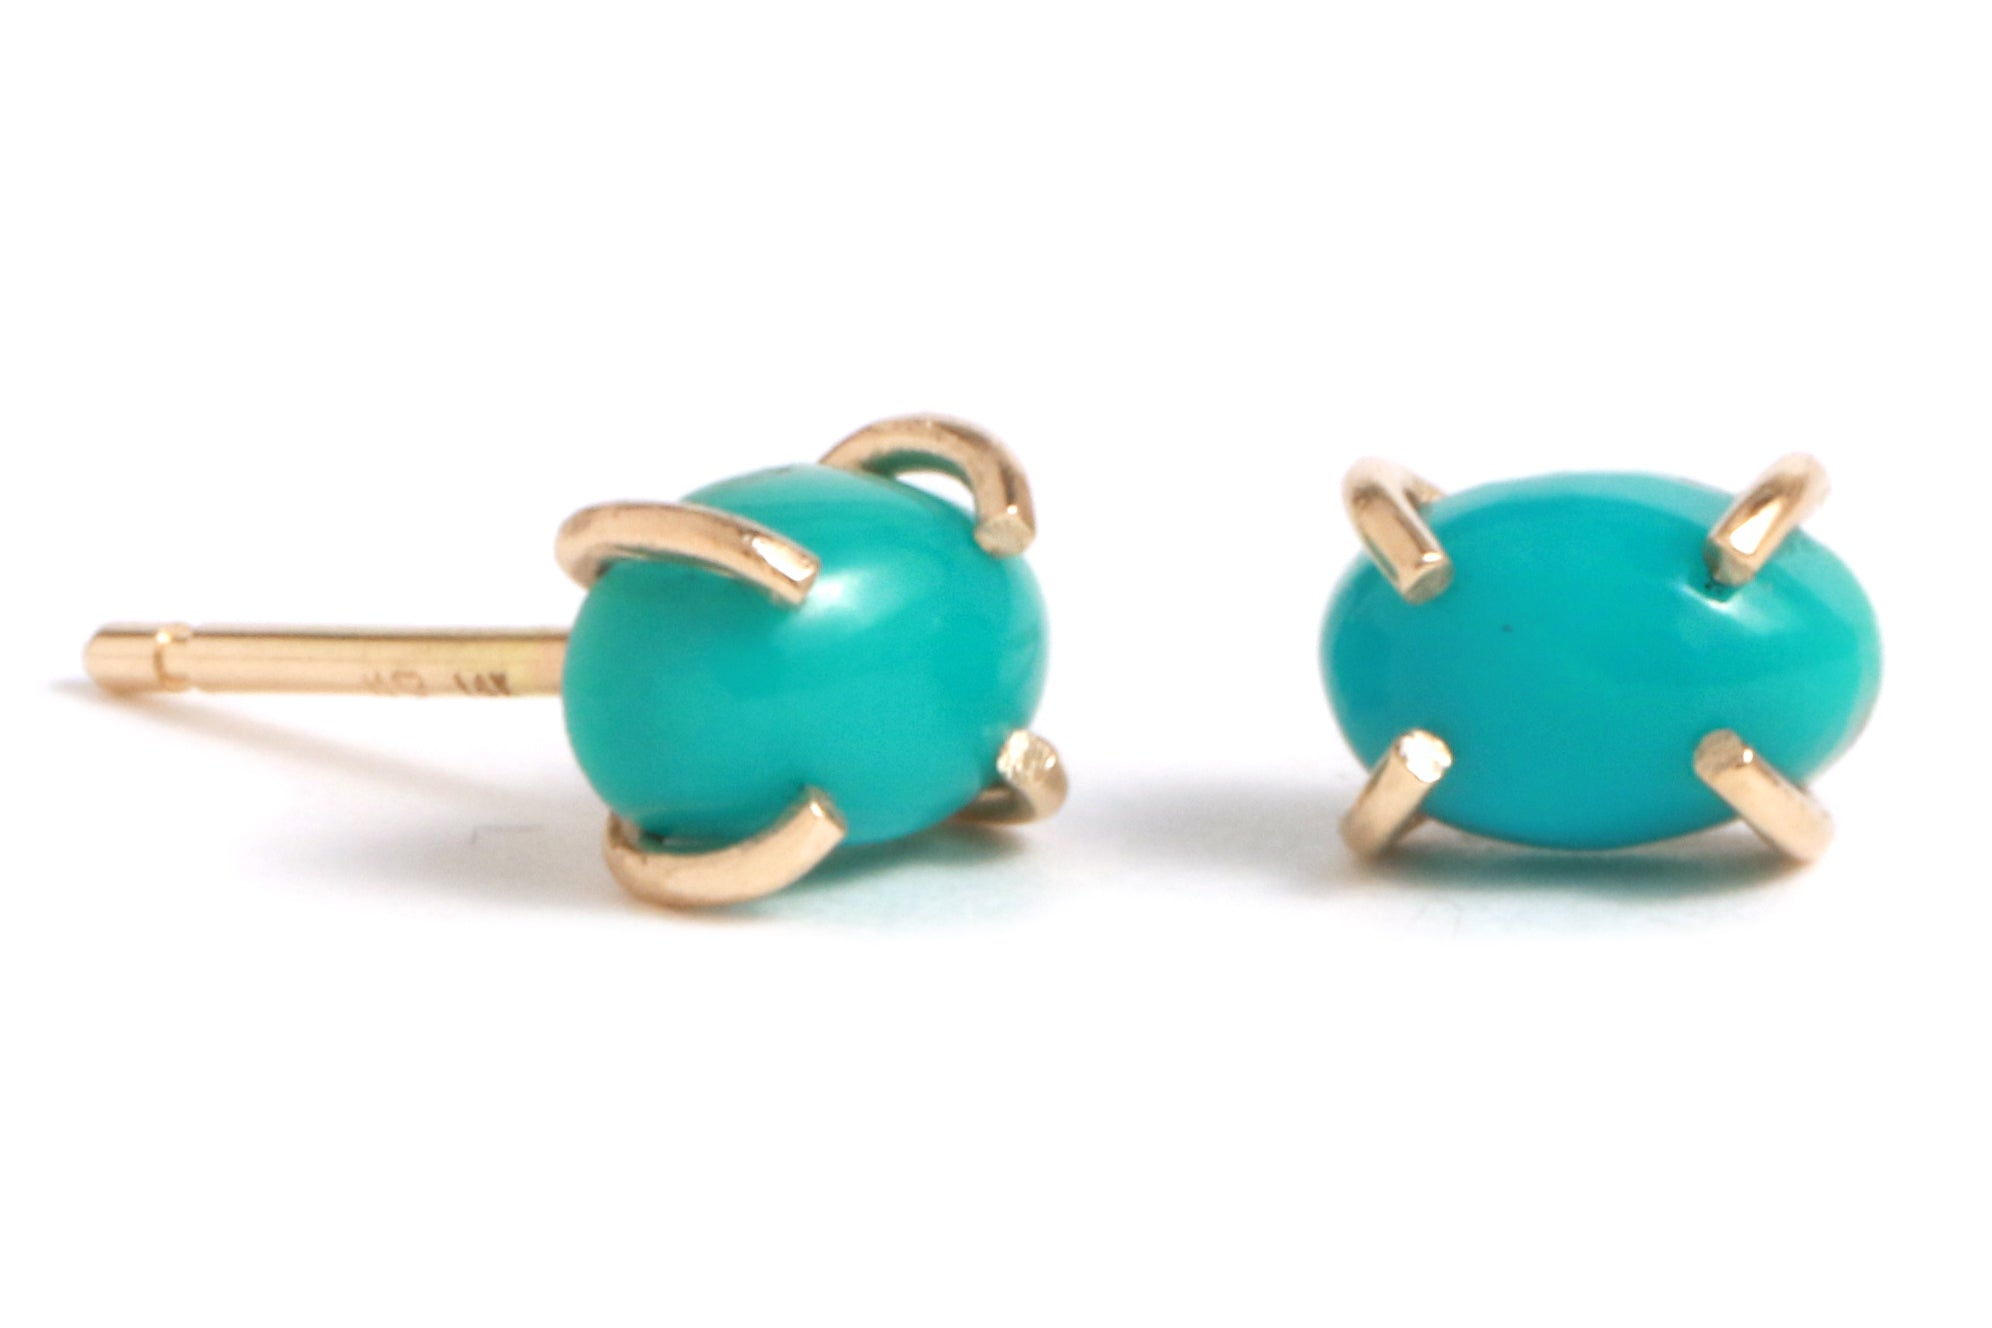 Arizona Turquoise Studs - Melissa Joy Manning Jewelry